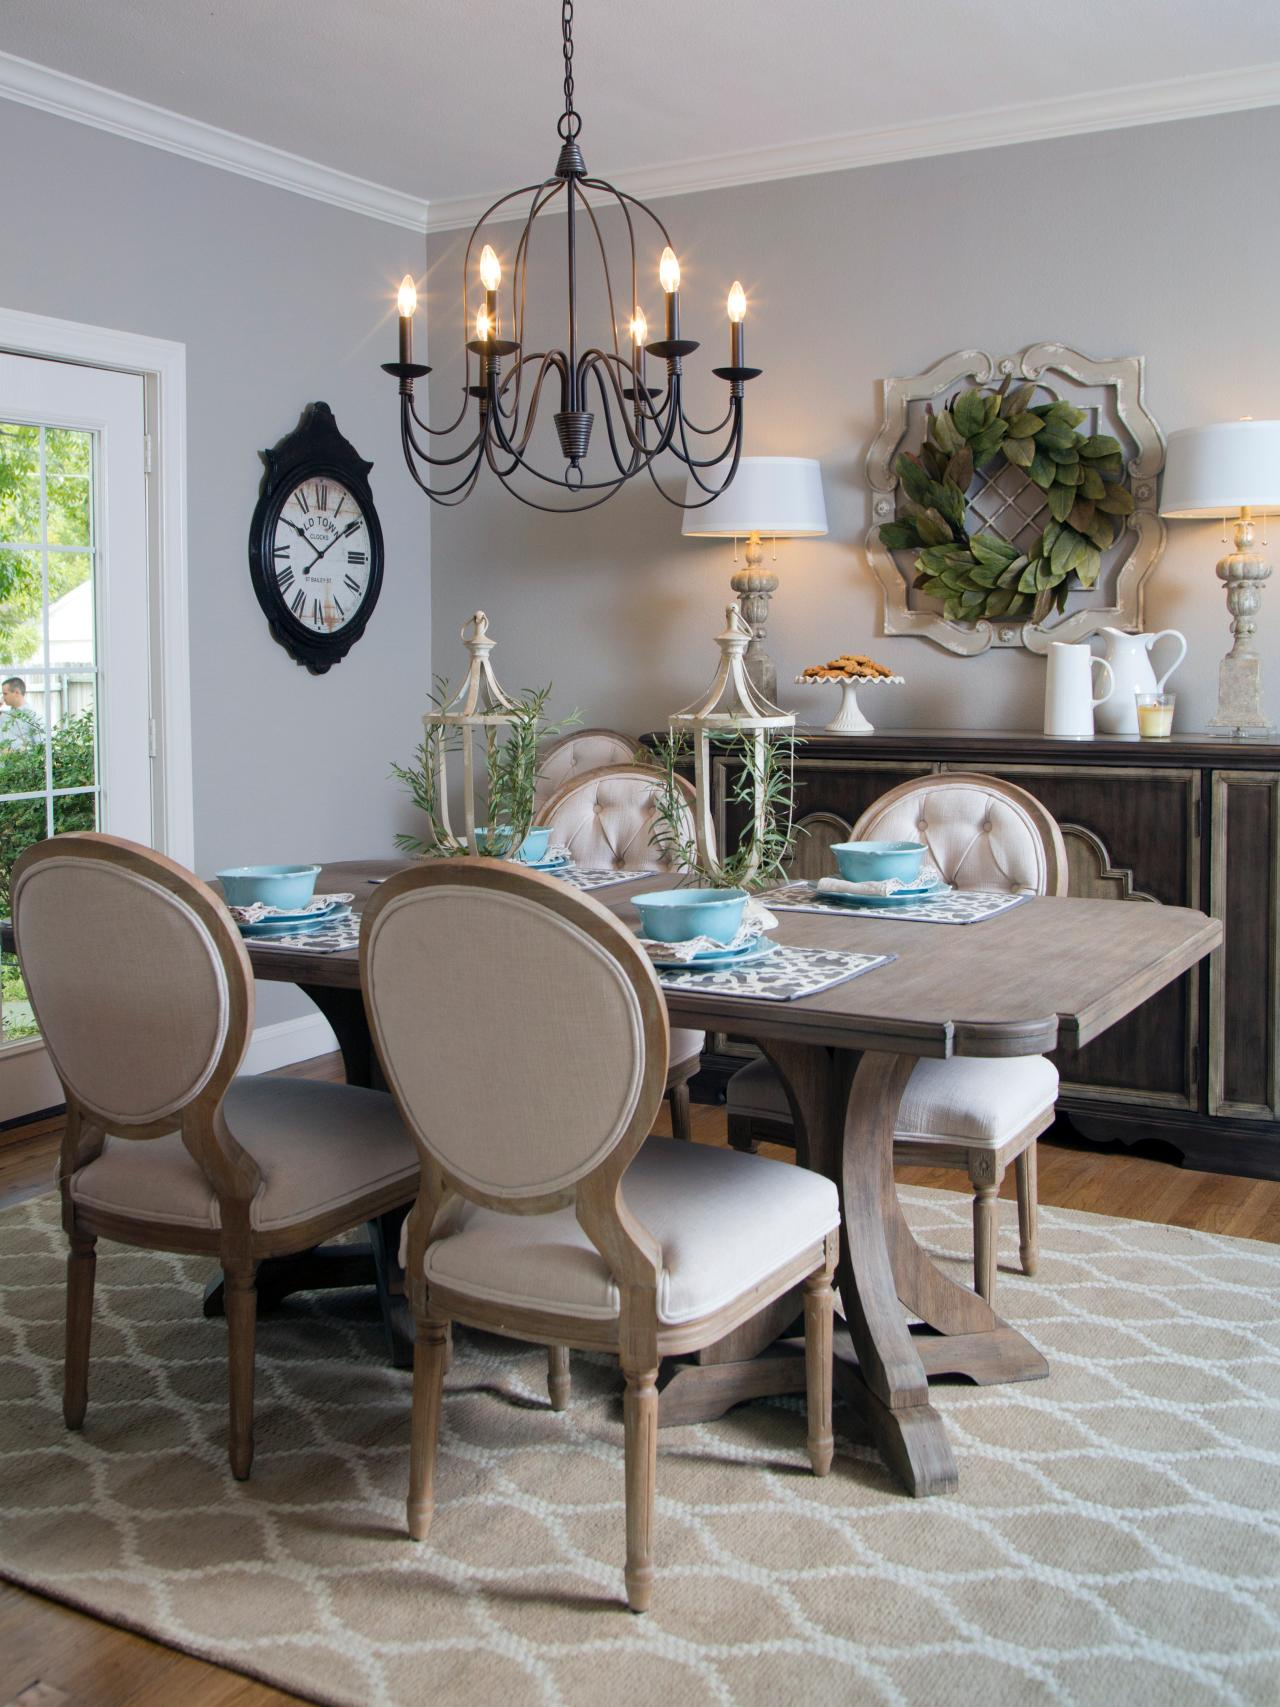 Photos hgtv for Dining room table decor